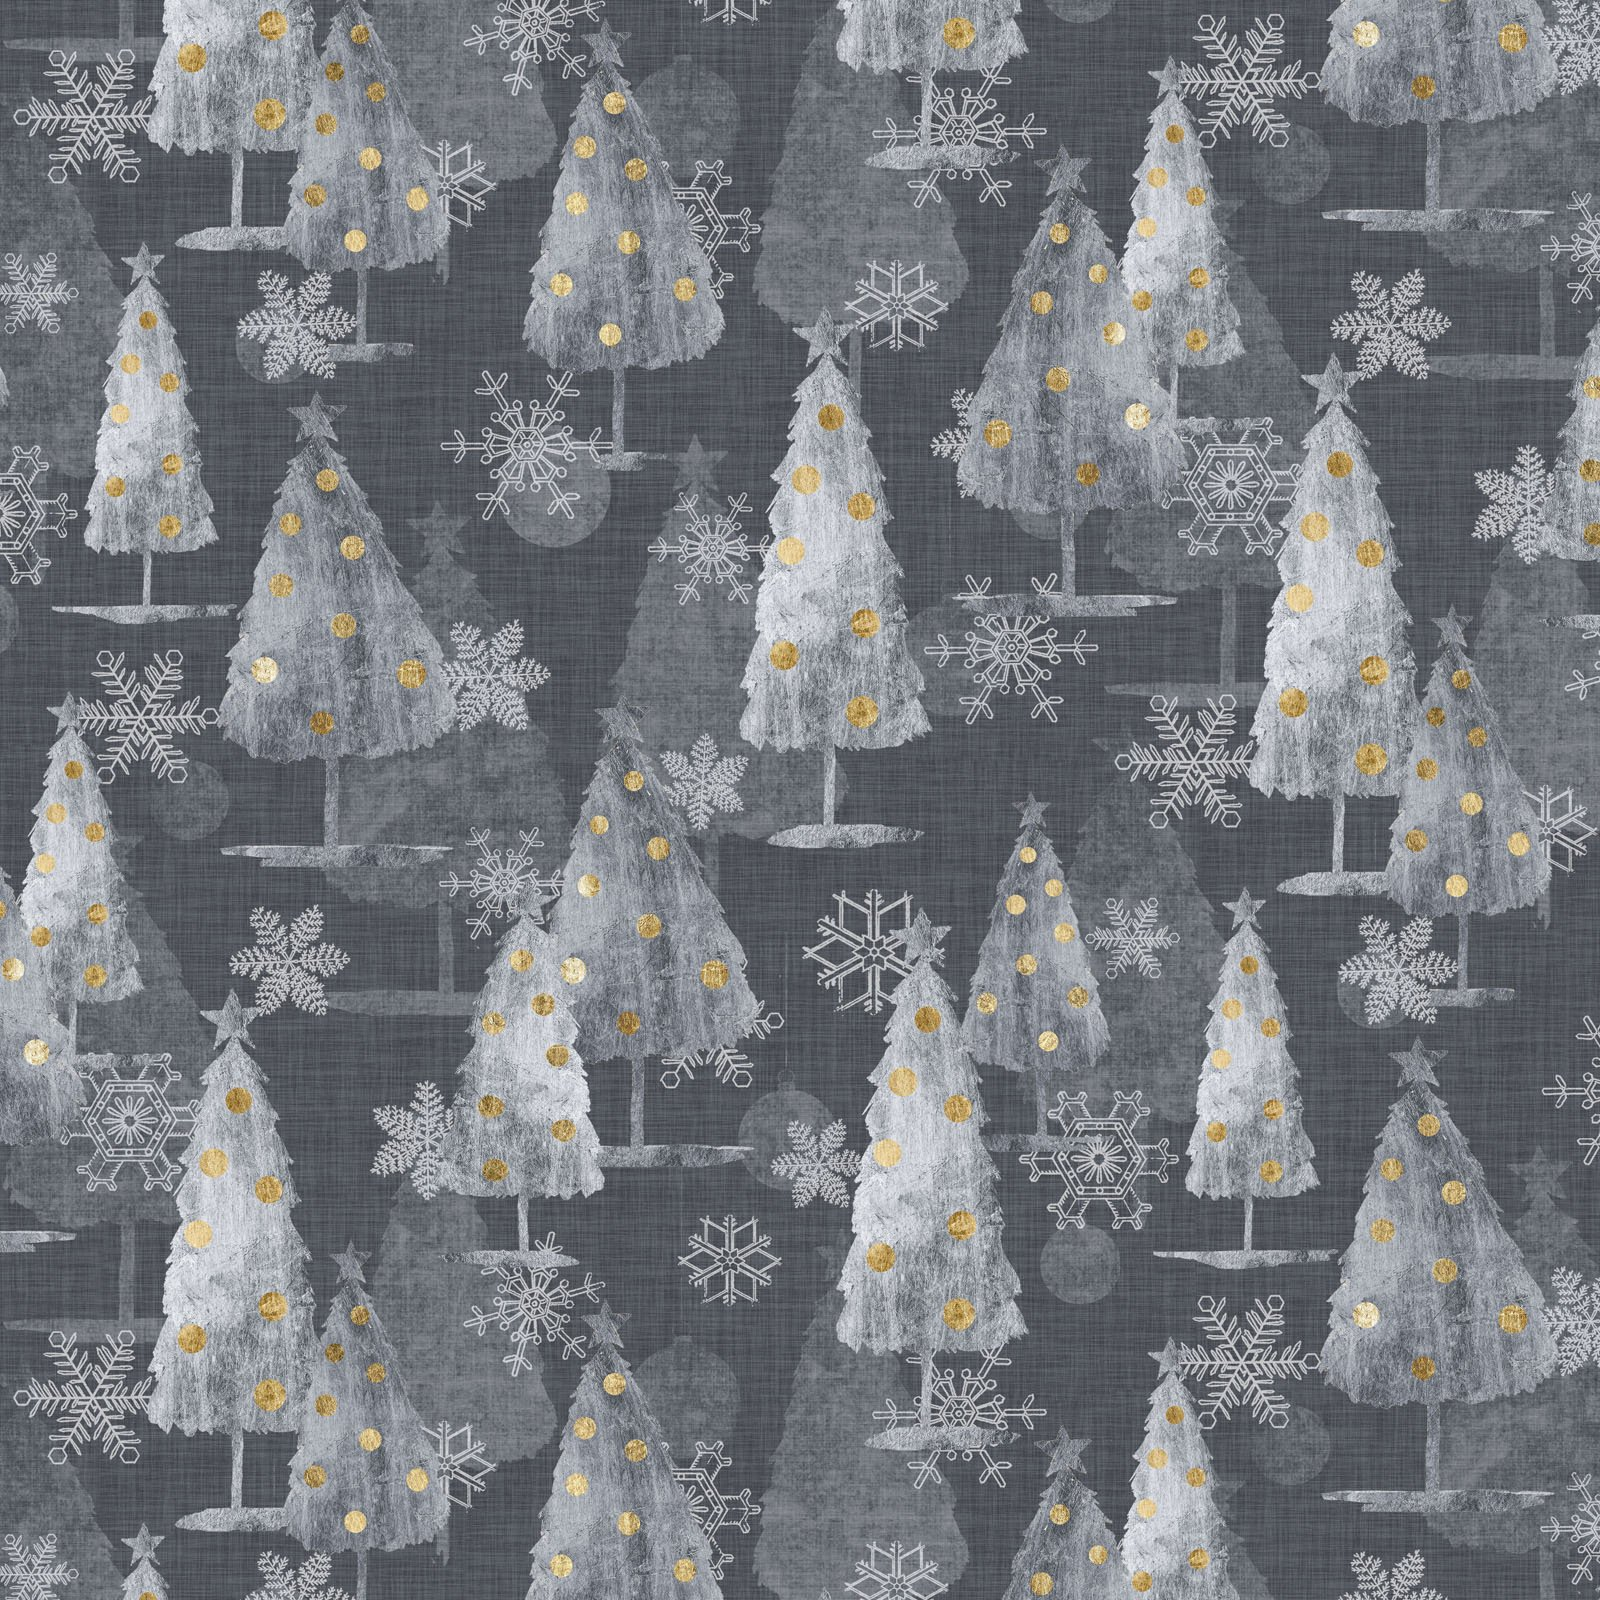 SOPC-4421 S- SOPHISTICATED CHRISTMAS BY GRACE POPP ALL OVER TREES/SNOWFLAKES SILVER - ARRIVING IN MAY 2021